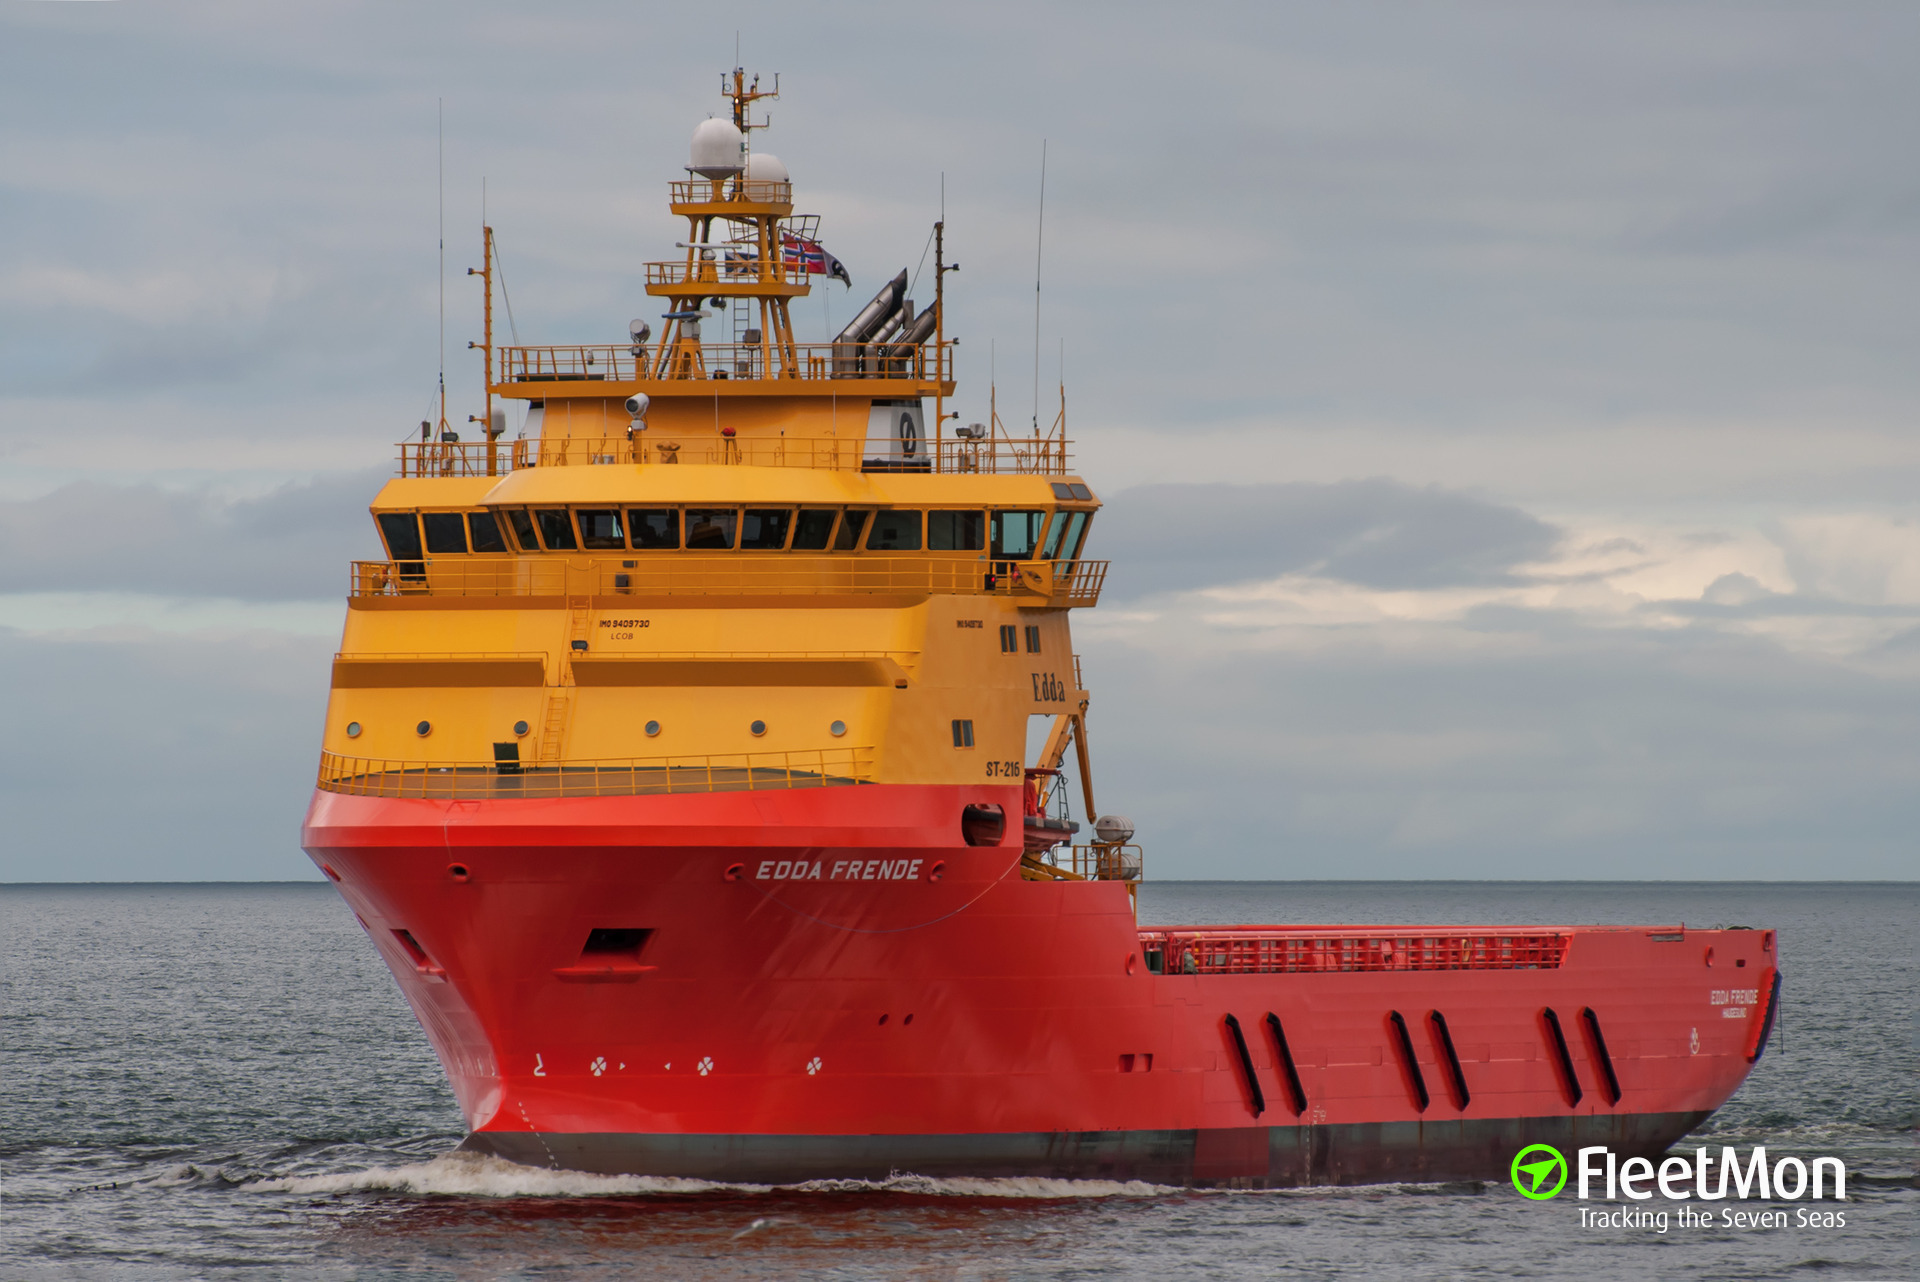 Offshore tug supply vessel Edda Frende fire